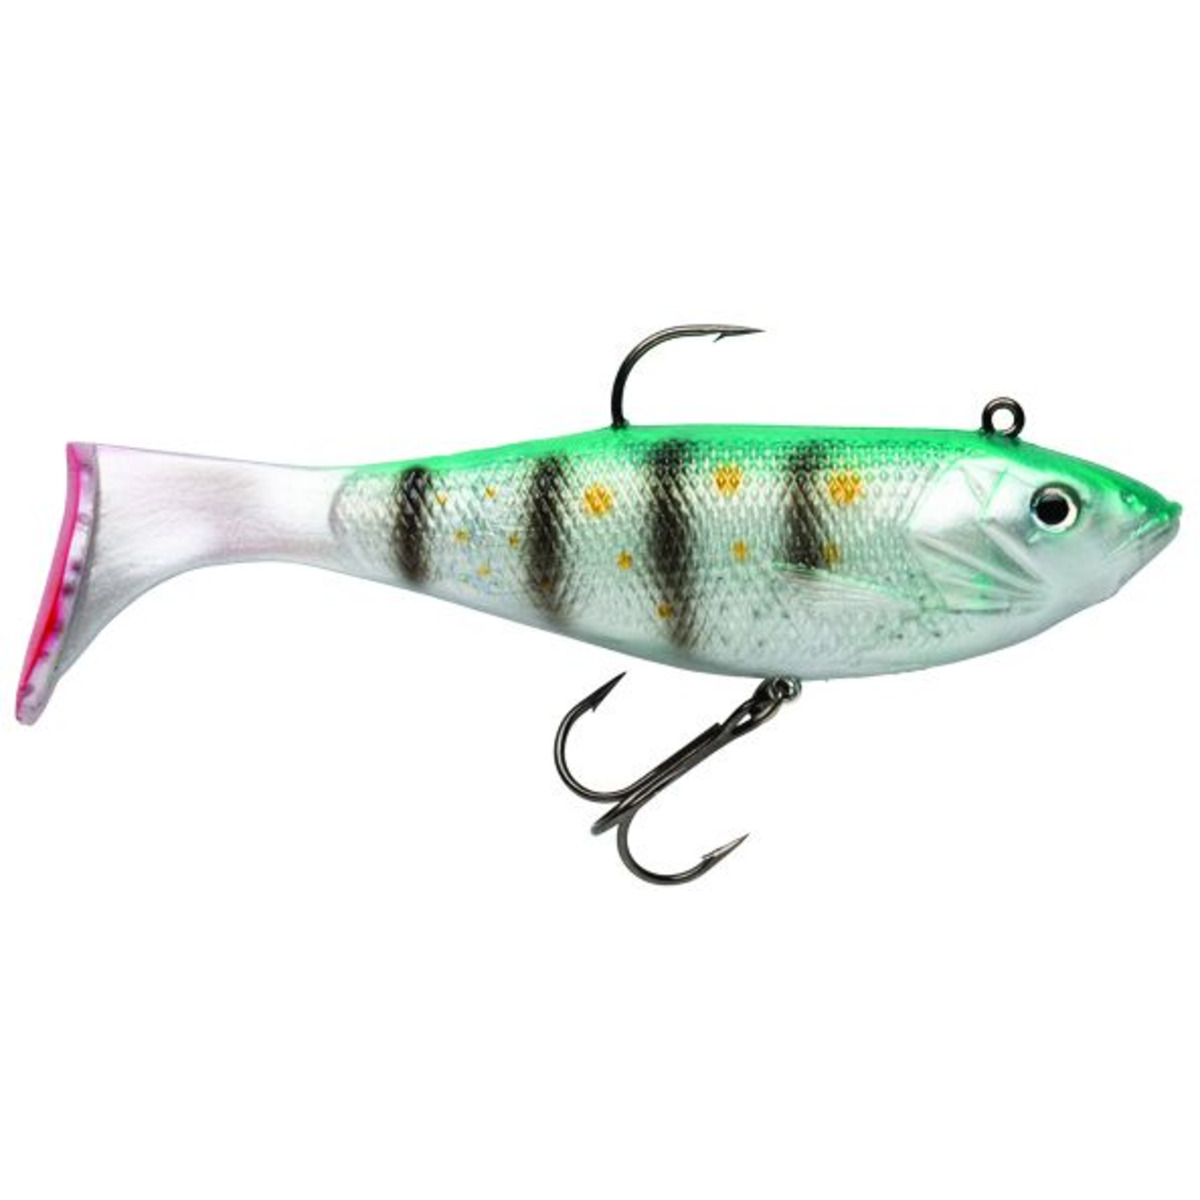 Storm Suspending Wild Tail Shad - 15 cm - 44 g - Green Cloud